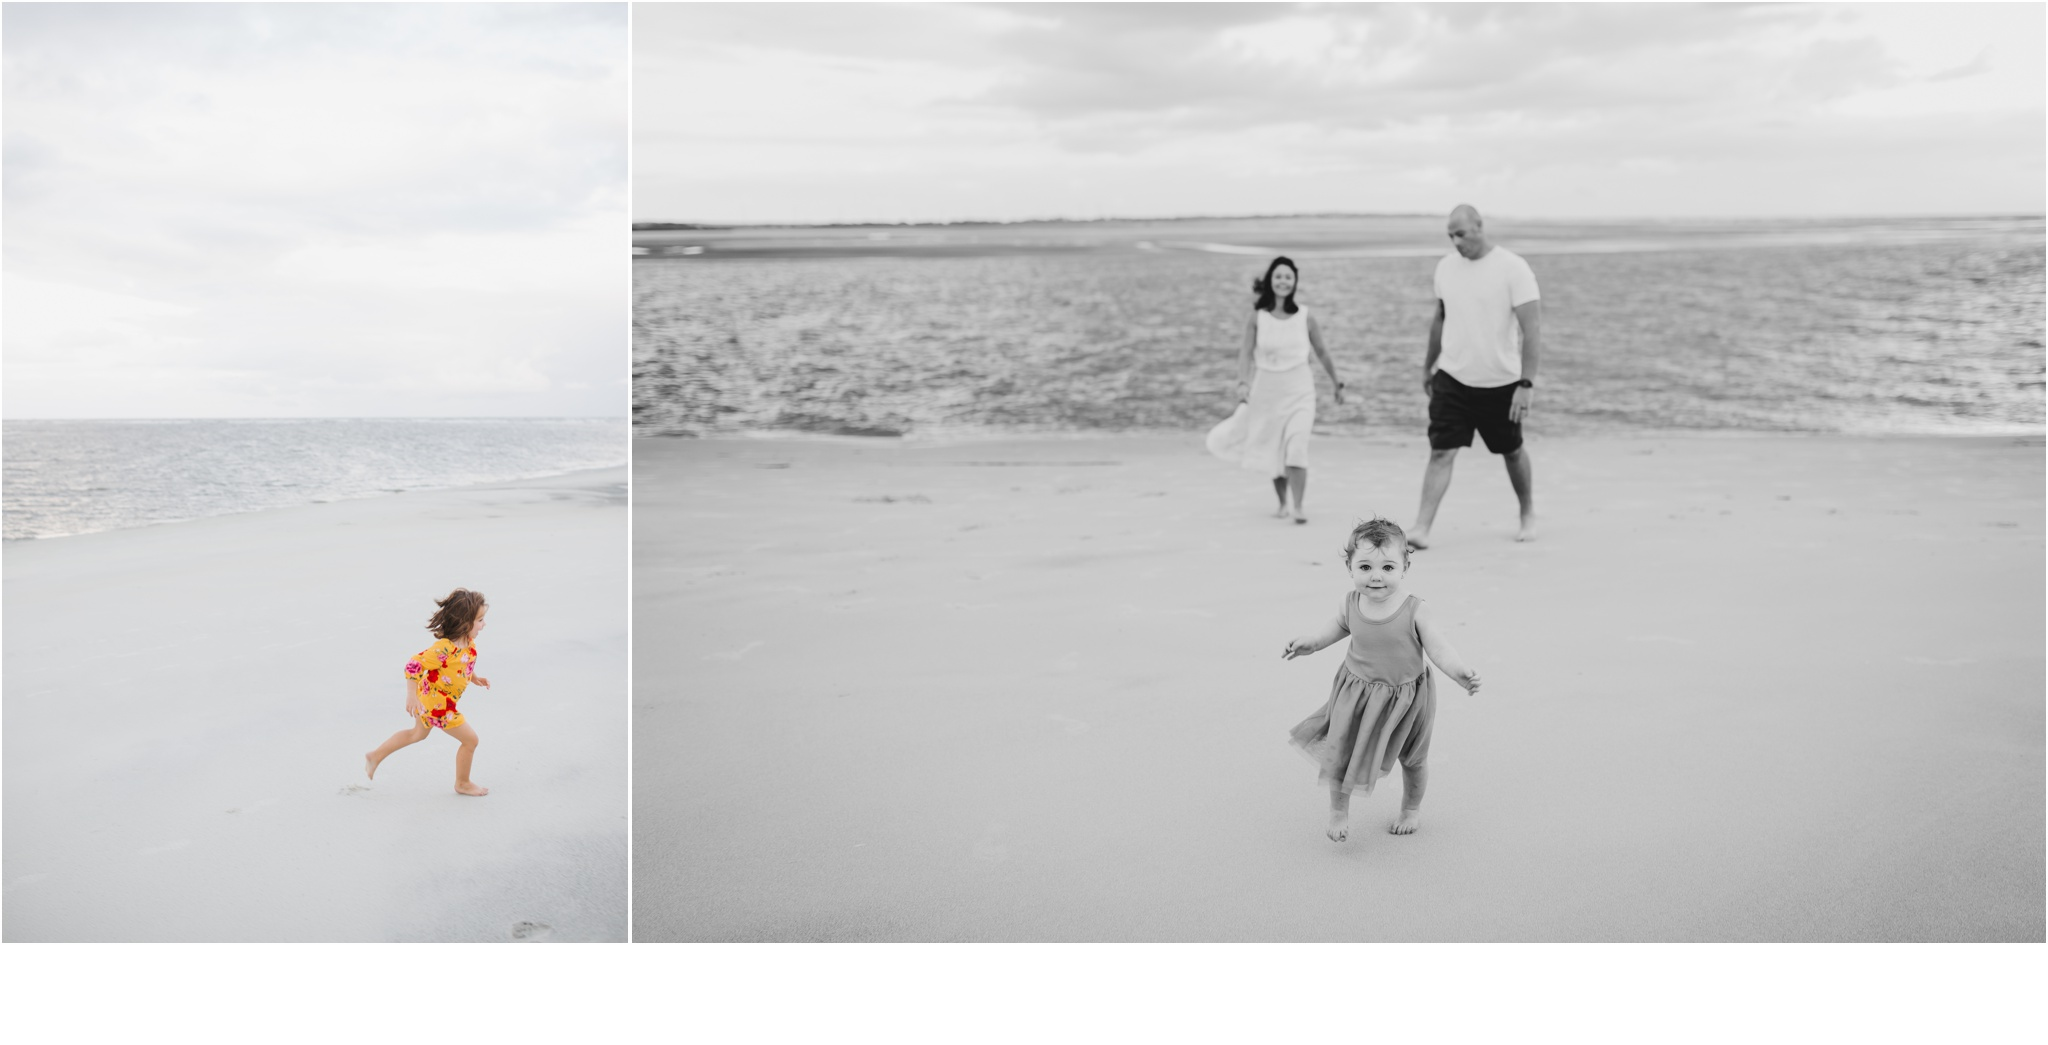 Rainey_Gregg_Photography_St._Simons_Island_Georgia_California_Wedding_Portrait_Photography_1393.jpg